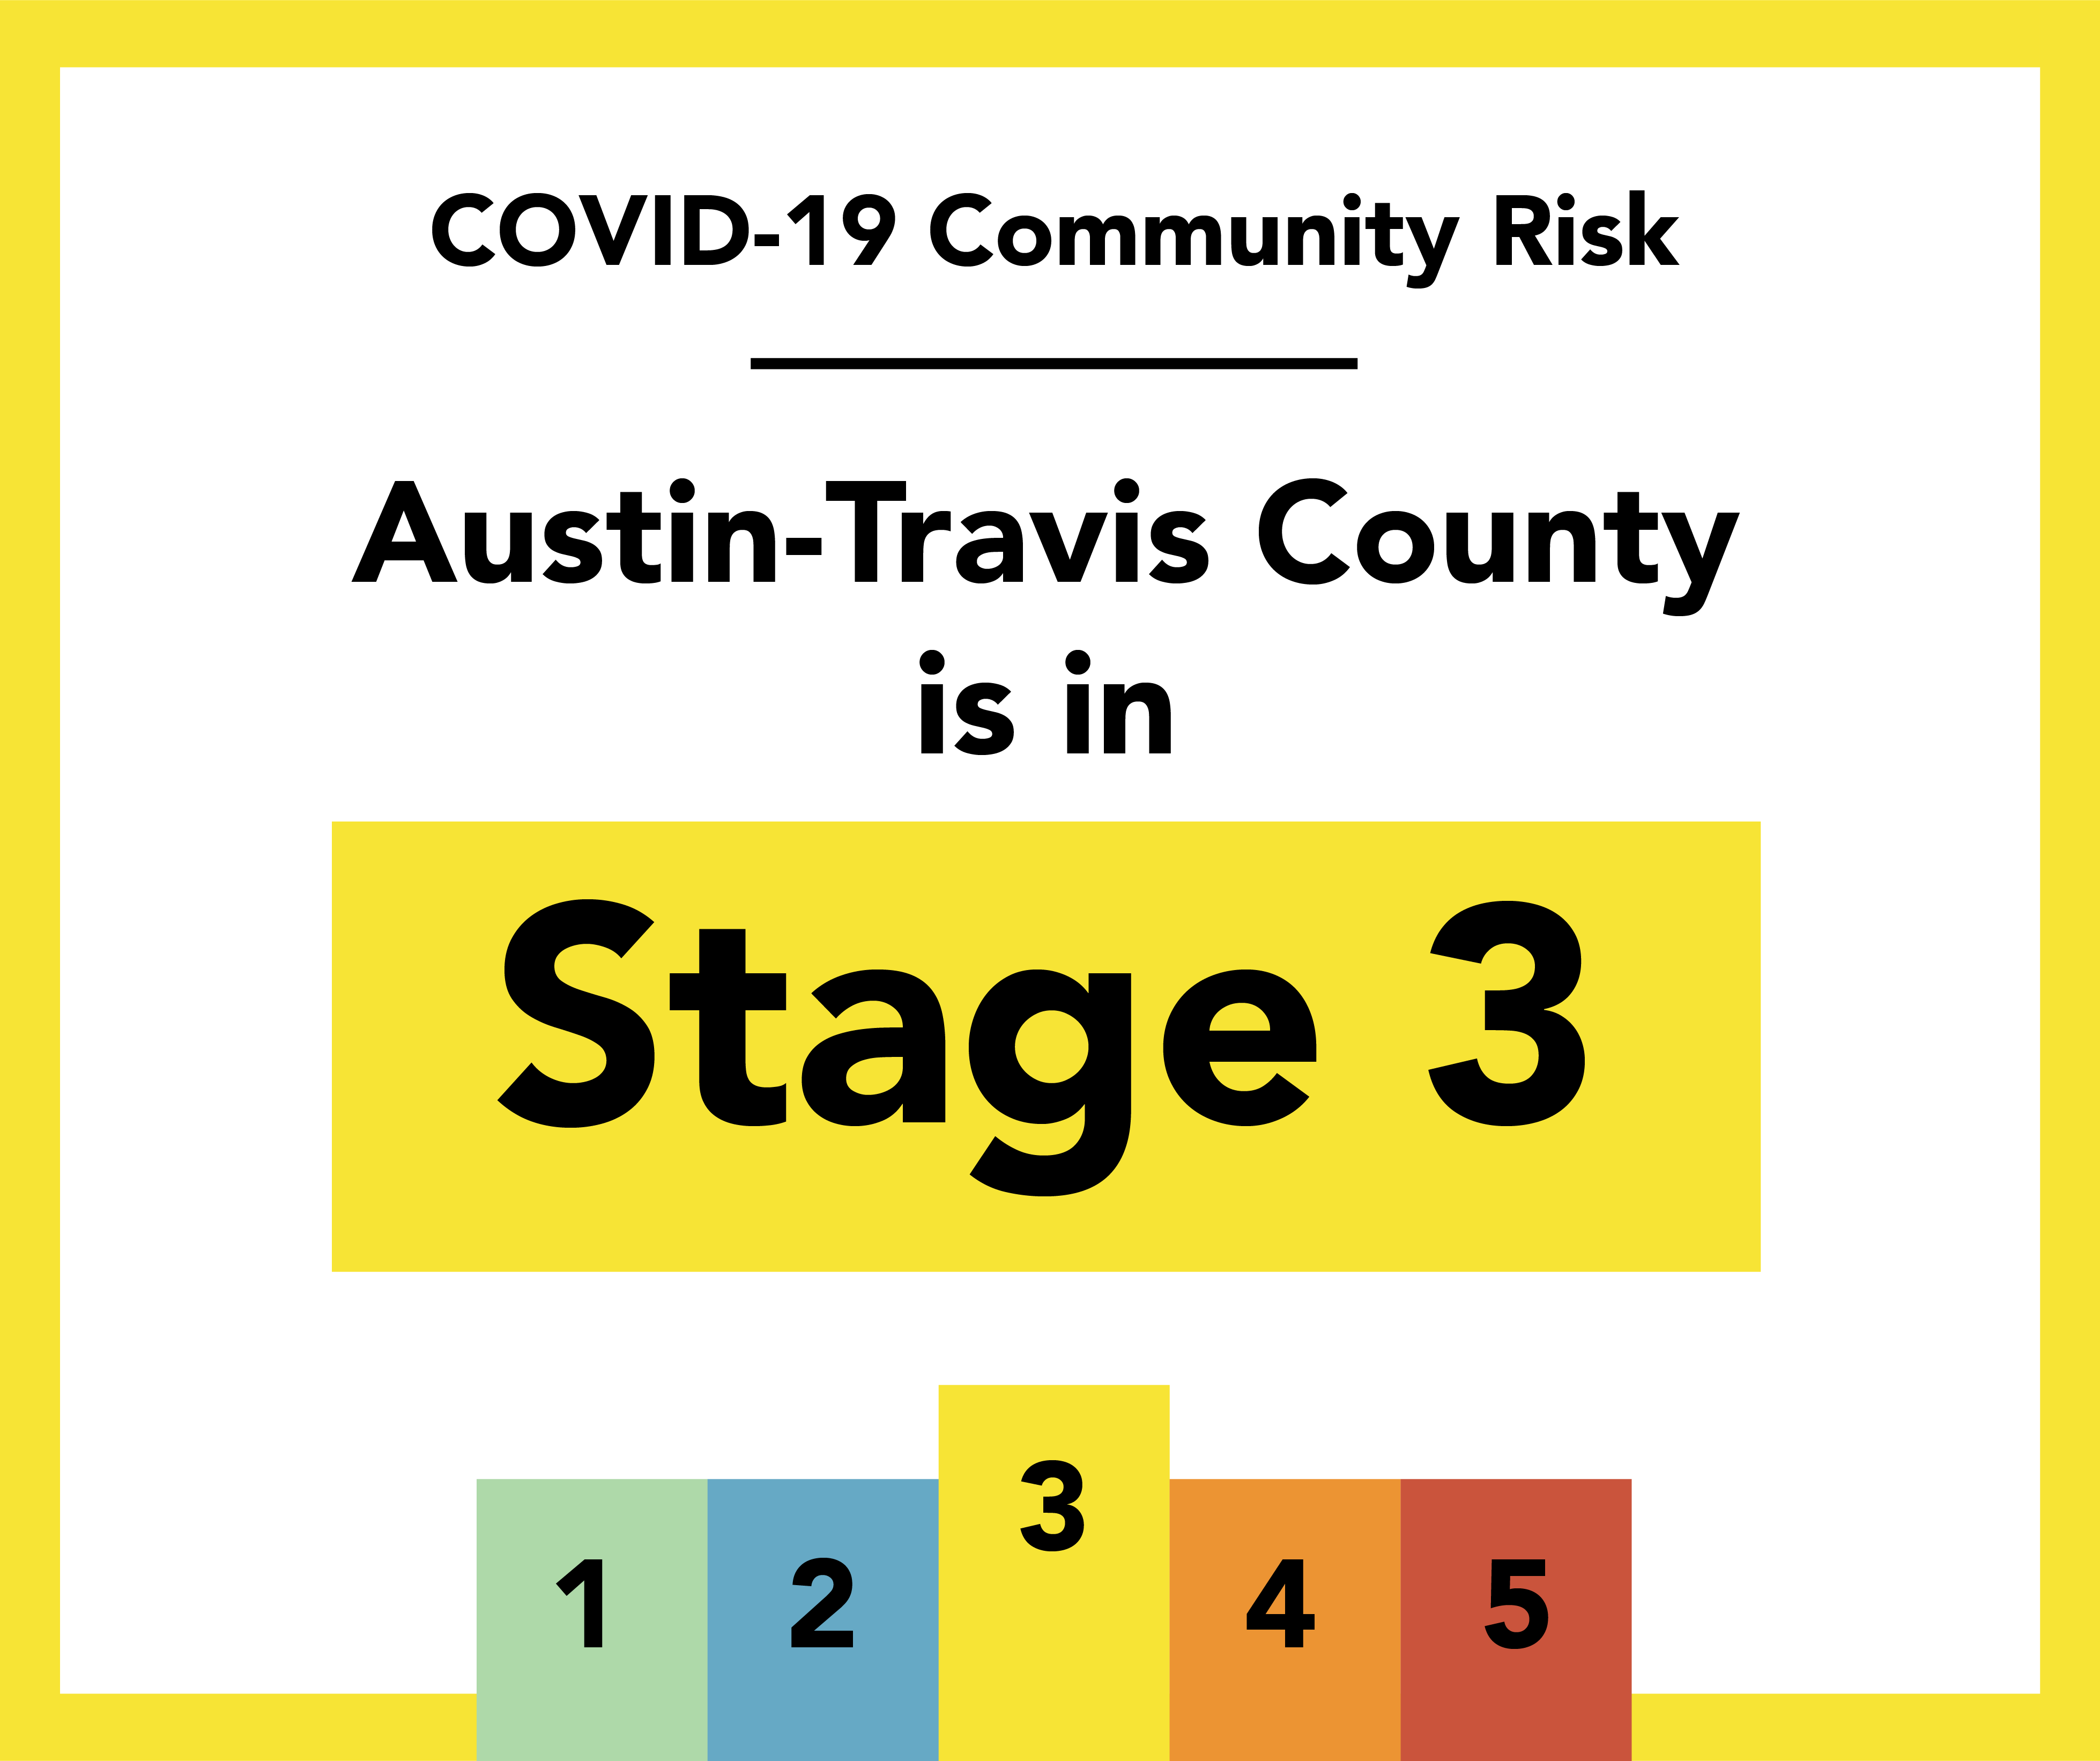 Austin-Travis County is in Stage 3 of Five Stages